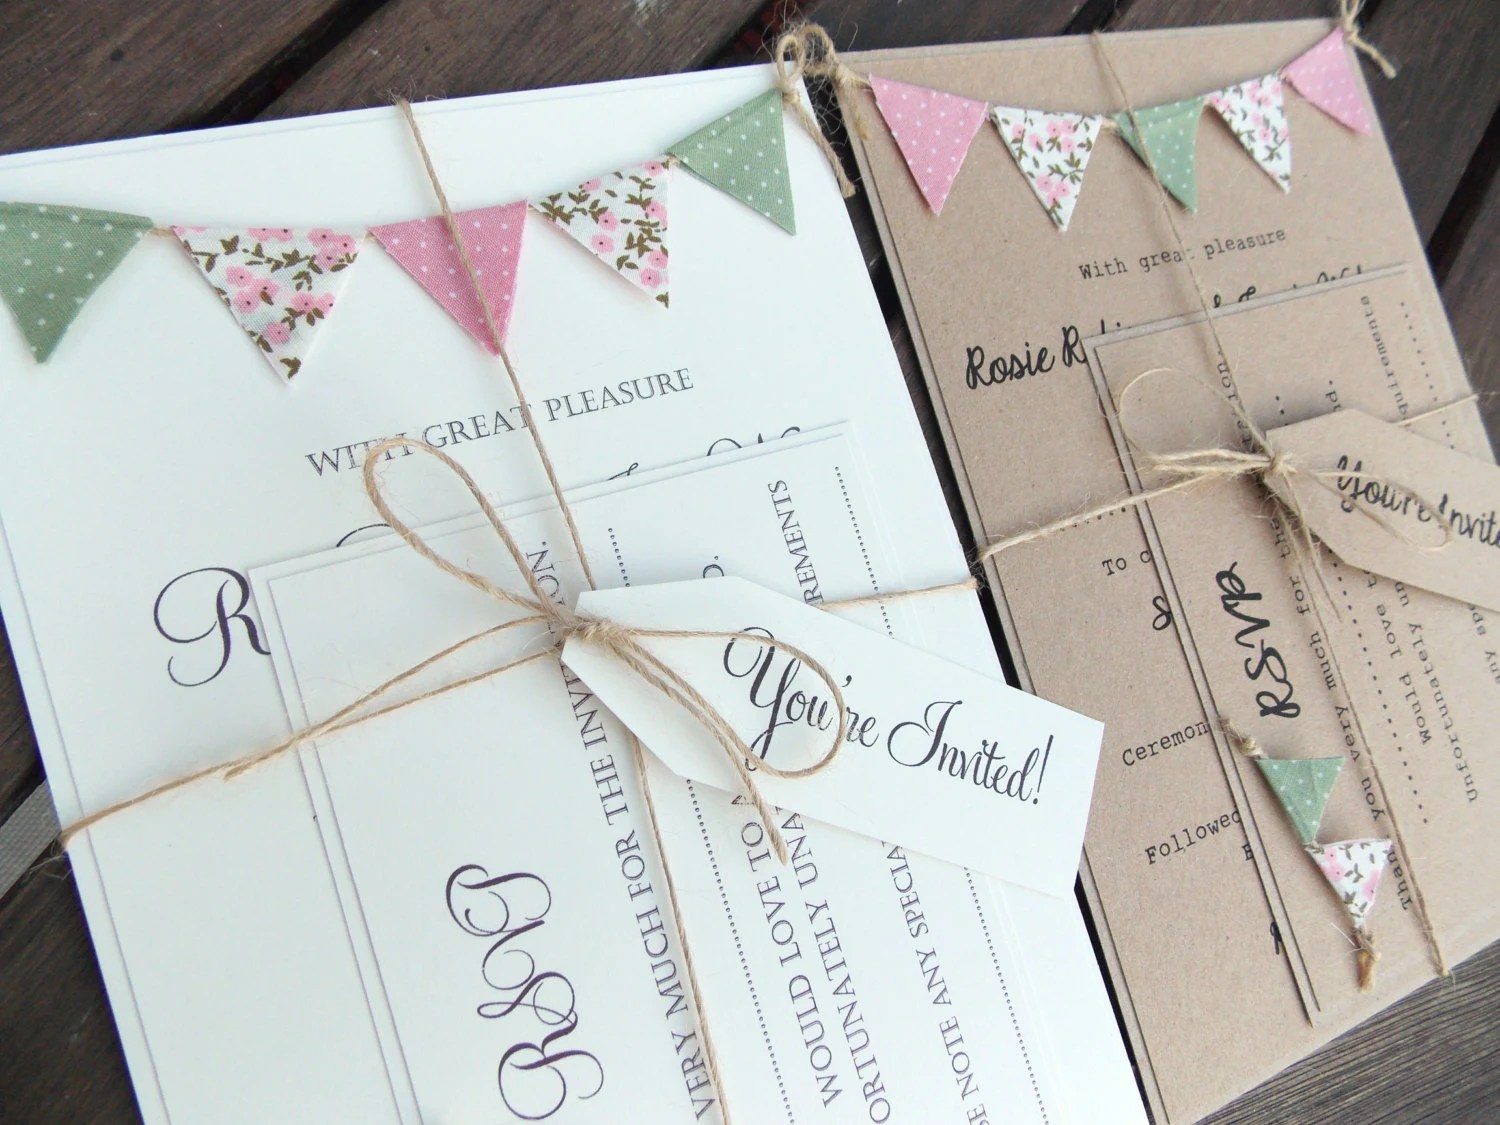 Homemade Rustic Wedding Invitations